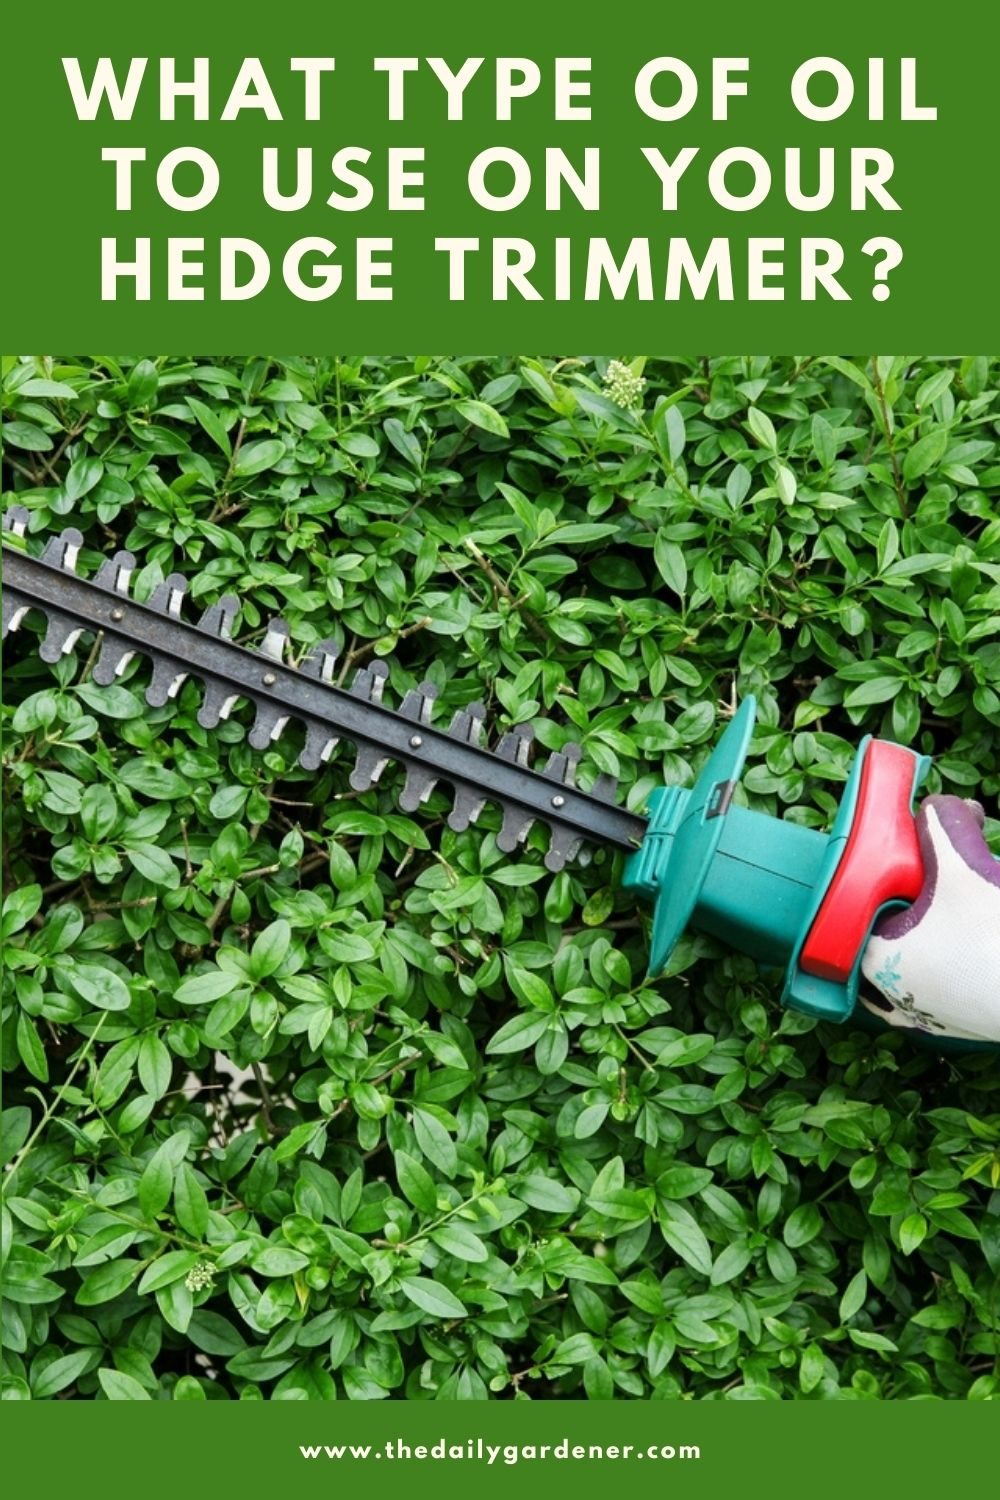 What Type of Oil to Use on Your Hedge Trimmer 1